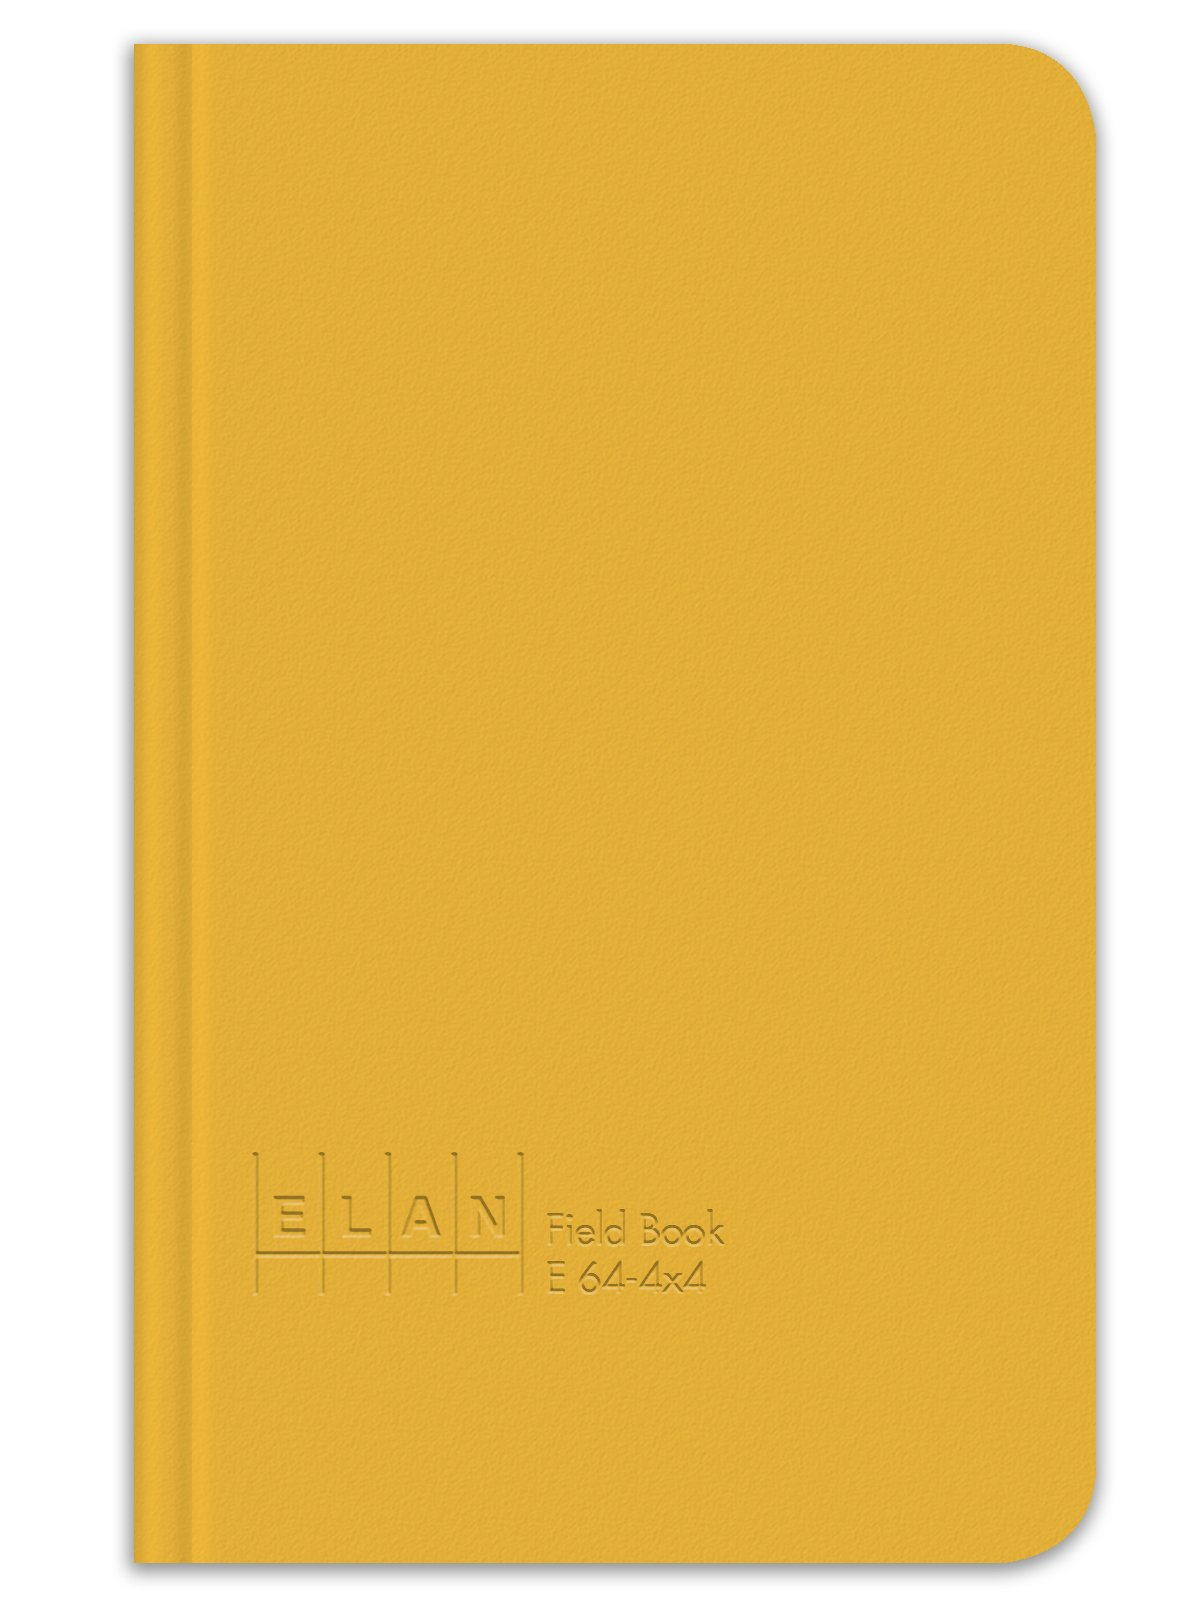 Elan Publishing Company E64-4x4 Field Surveying Book 4 ⅝ x 7 ¼, Yellow Cover (Pack of 48)